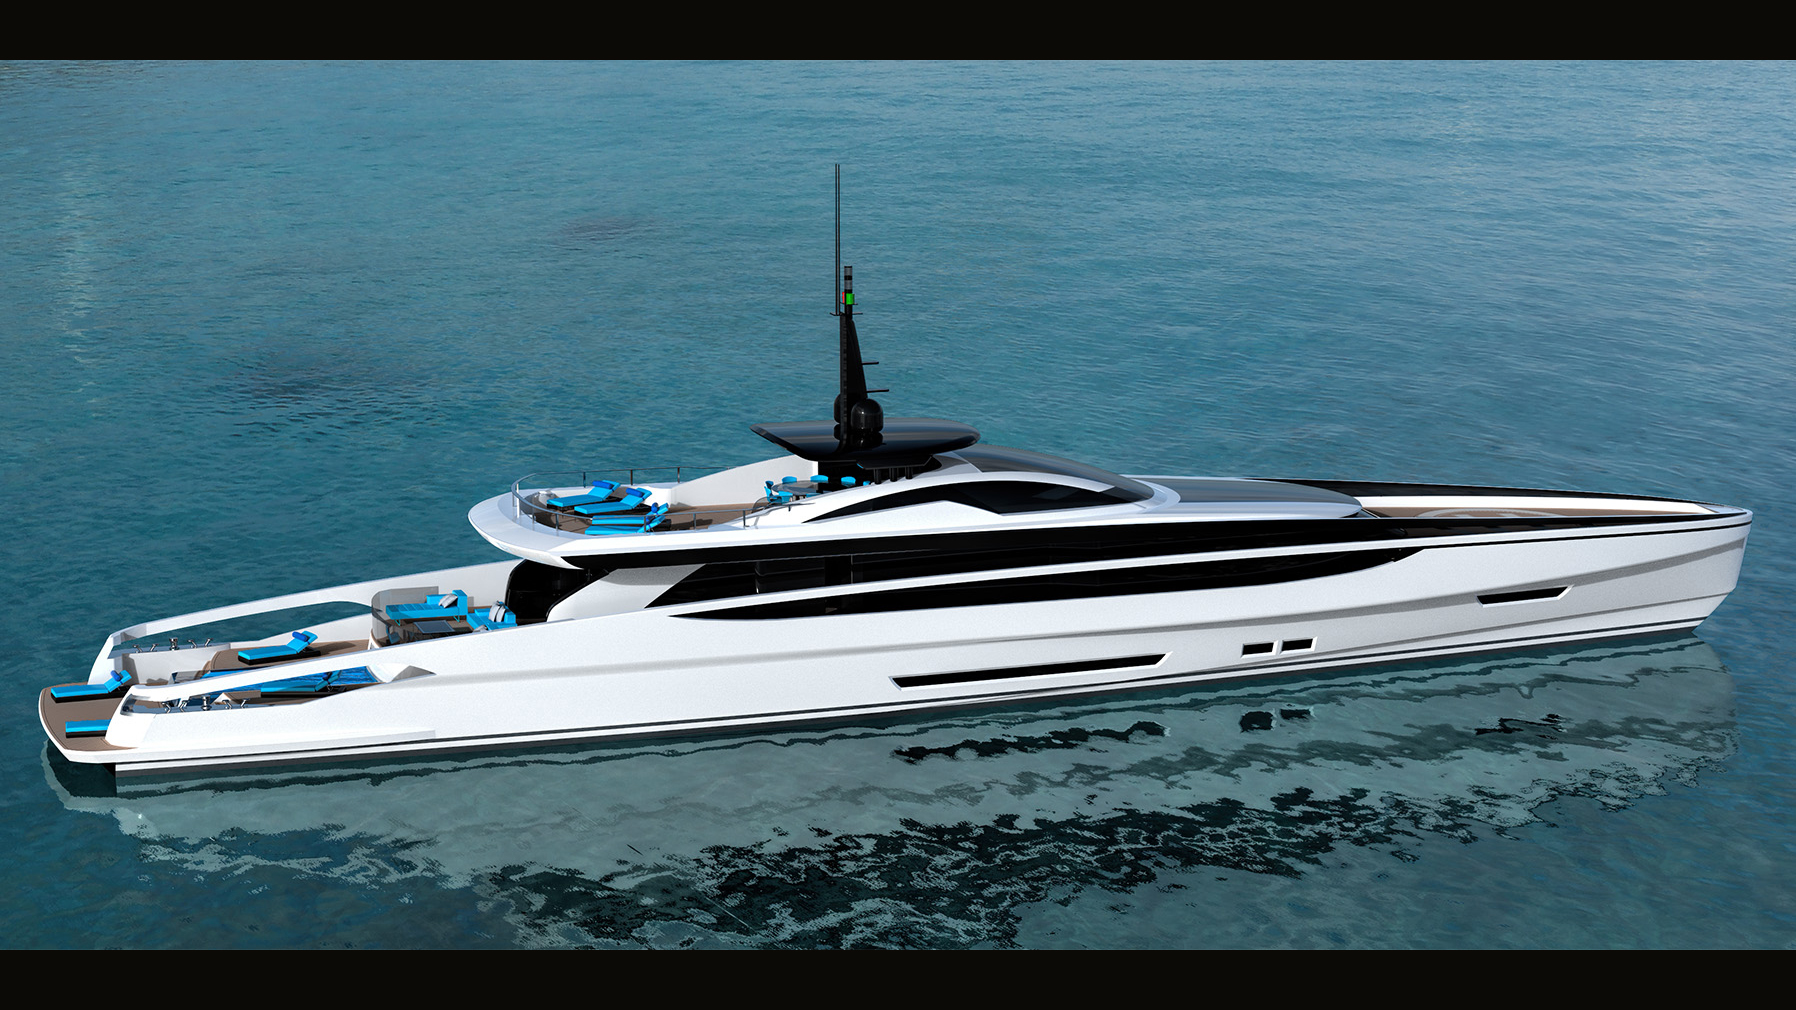 Ocean Independence Van Oossanen Federico Fiorentino Fast Displacement XL-300 superyacht concept